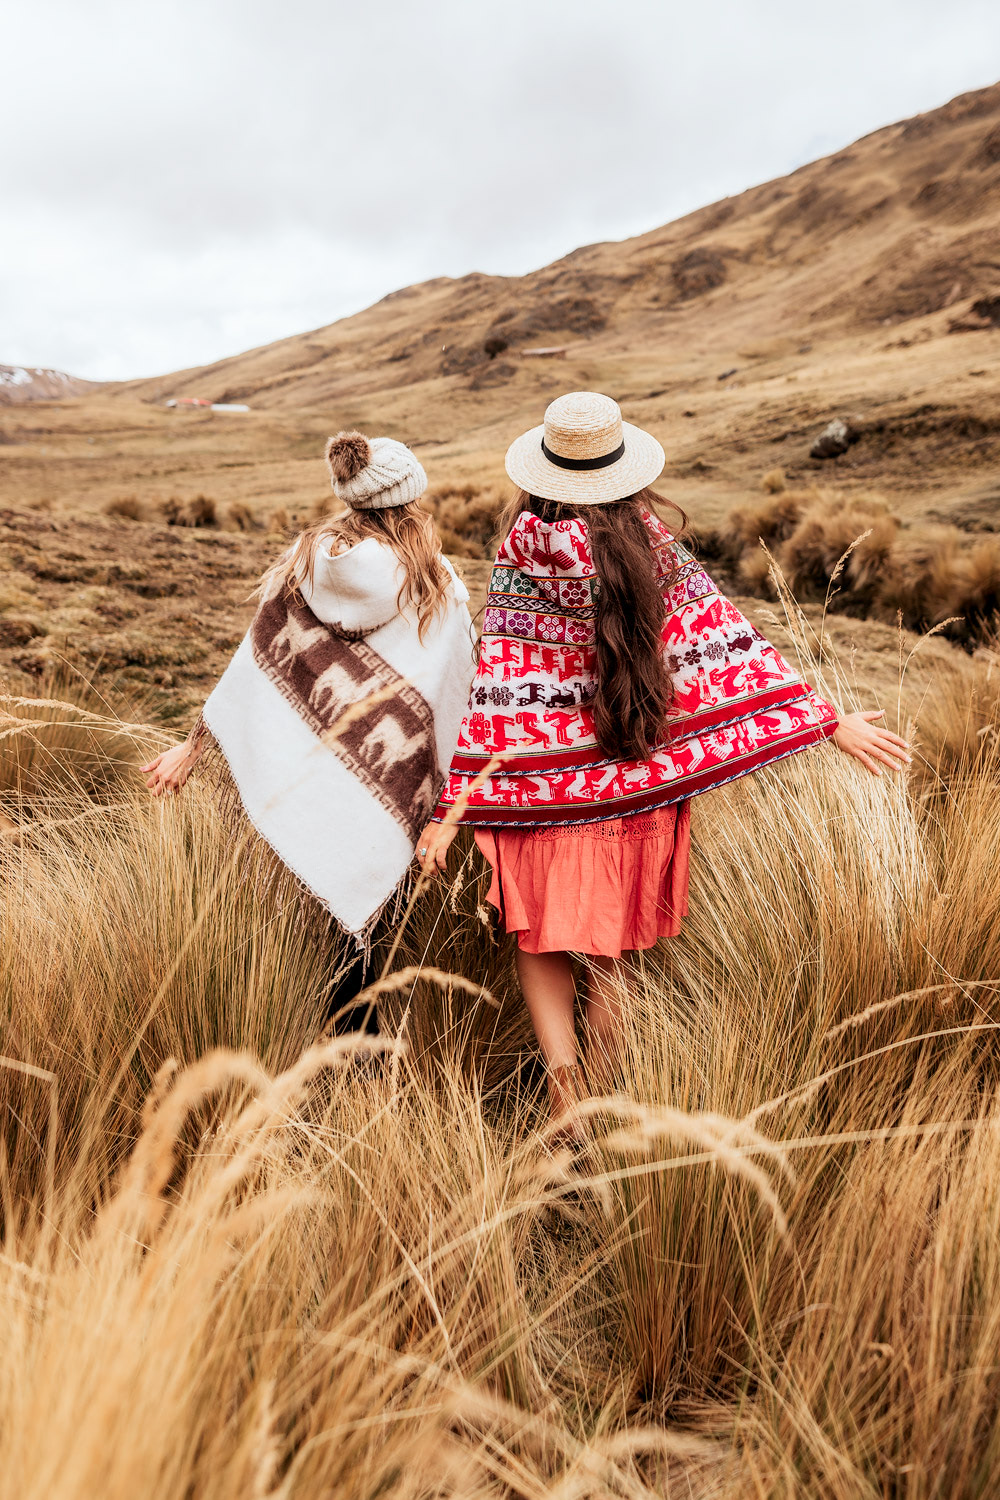 Best-Things-To-Do-In-And-Around-Cusco-Peru-Llama-Blessing5